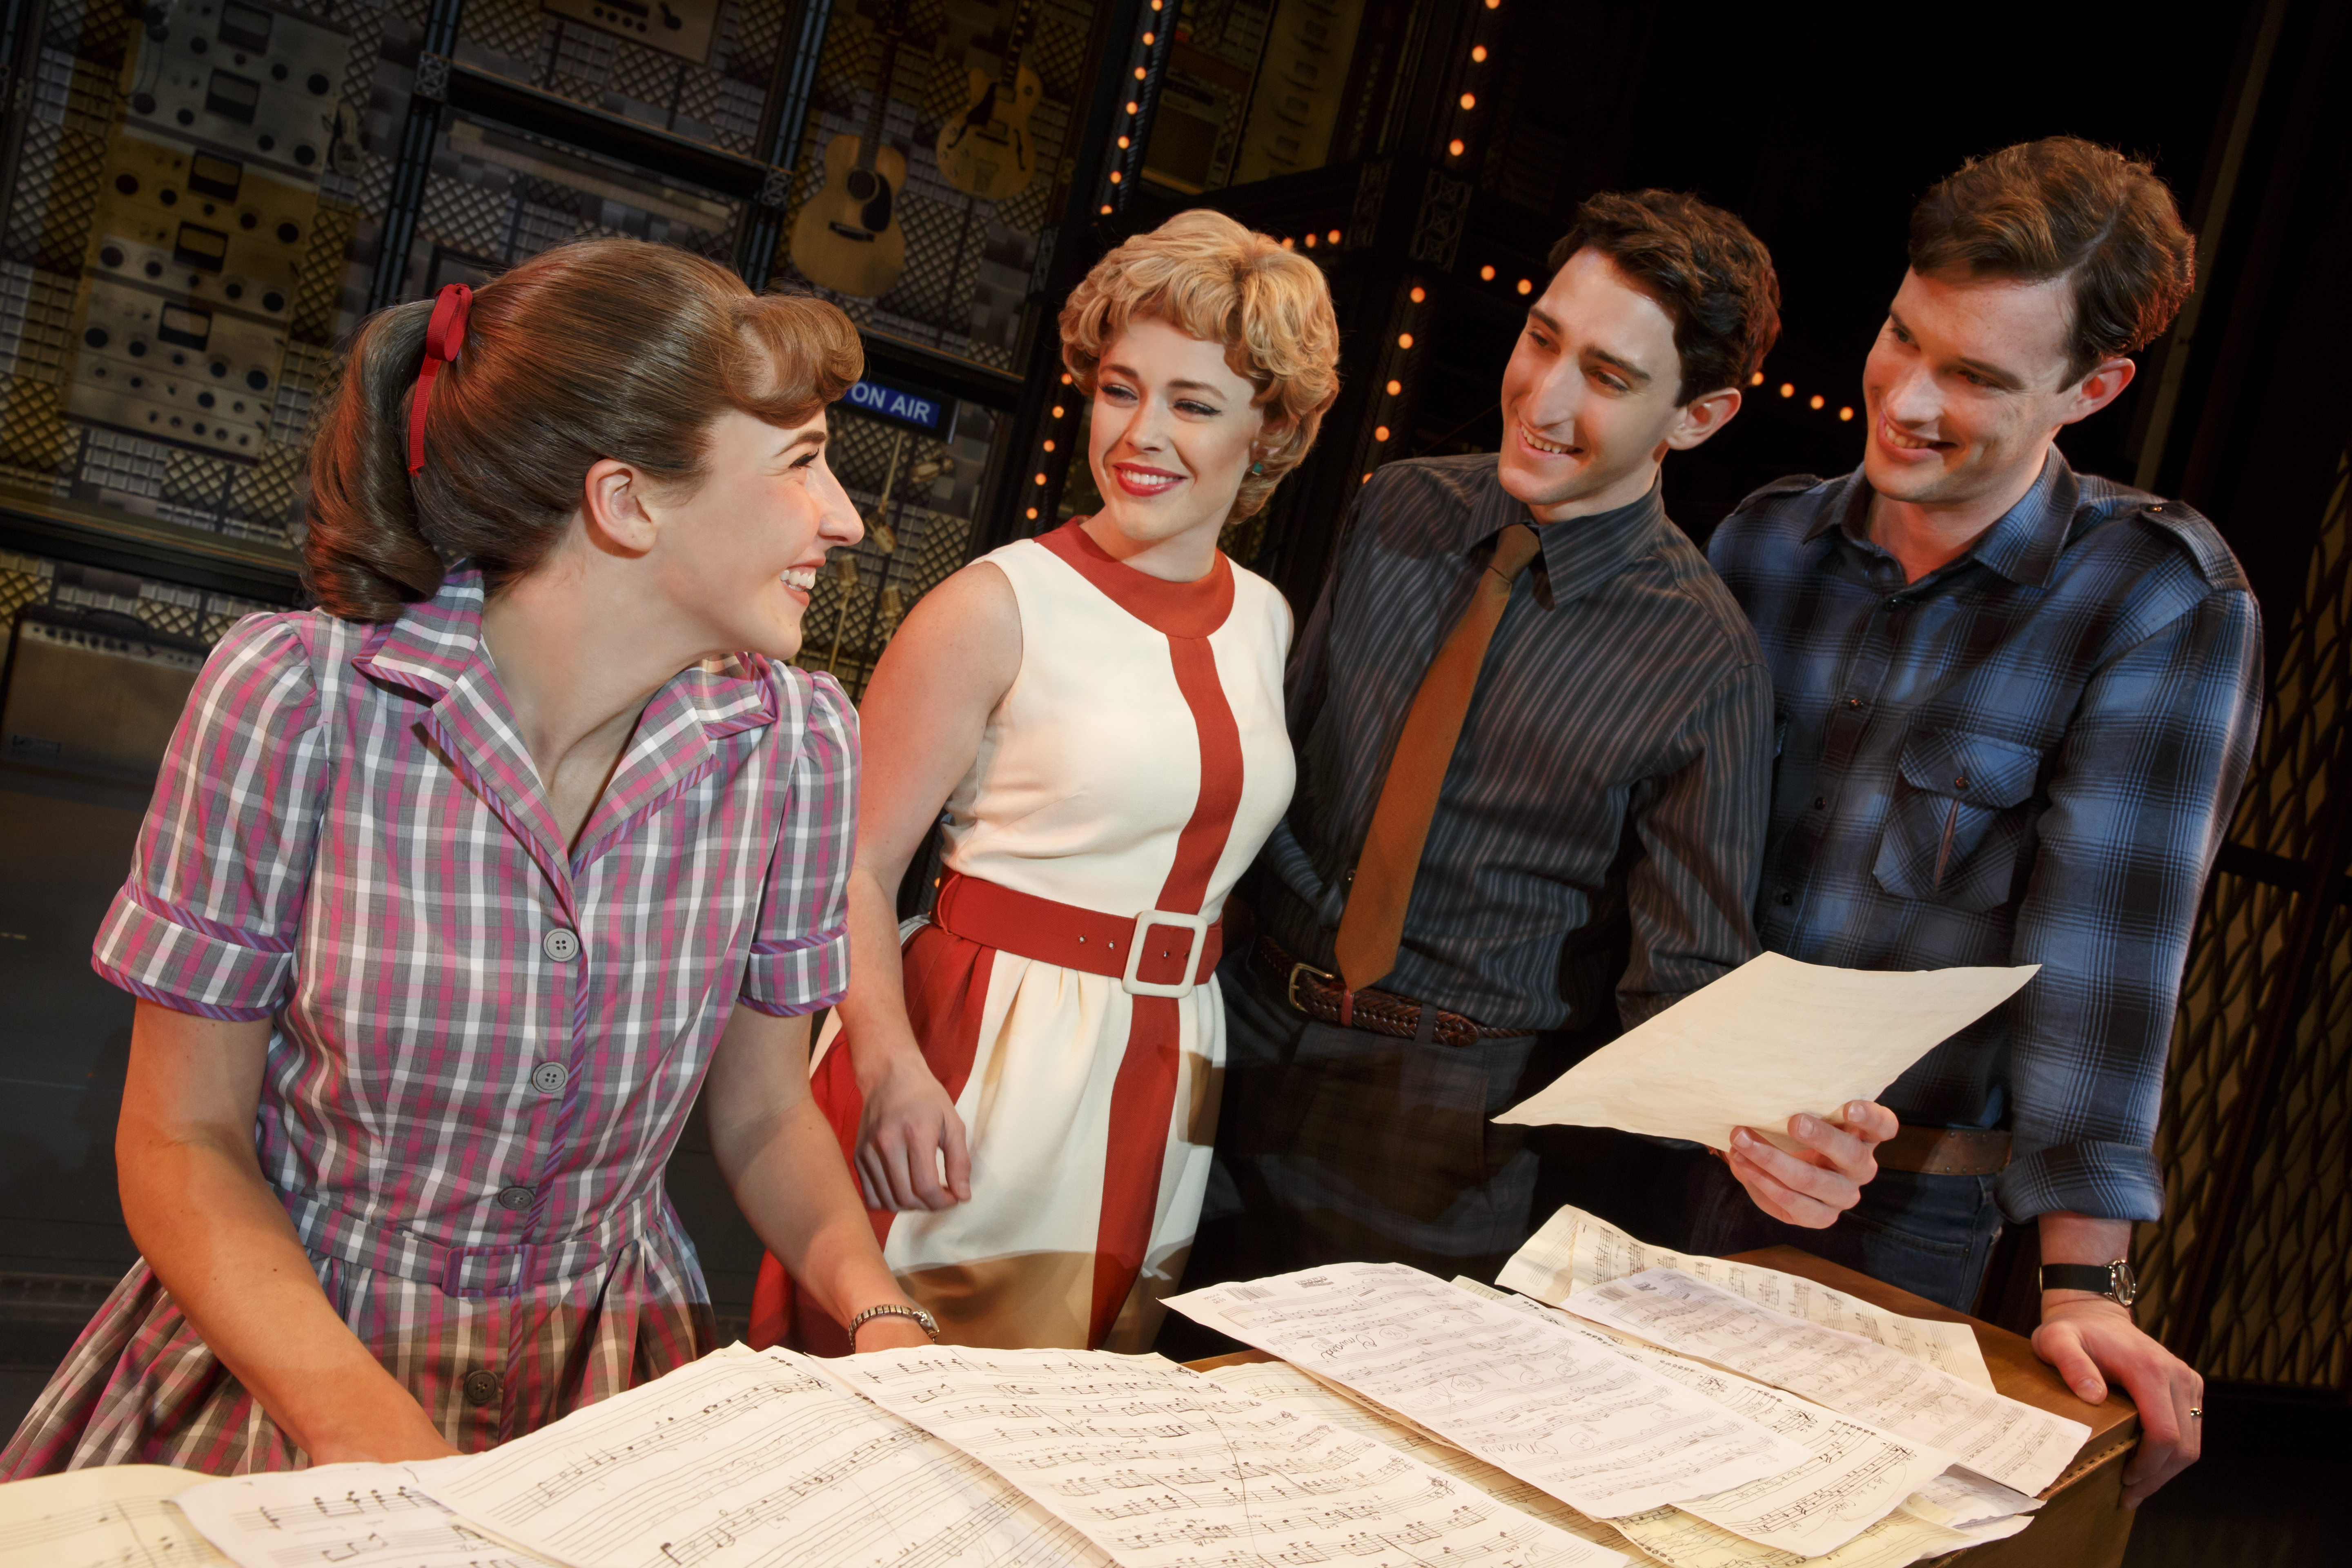 BWW Review: BEAUTIFUL: THE CAROLE KING MUSICAL at Saenger